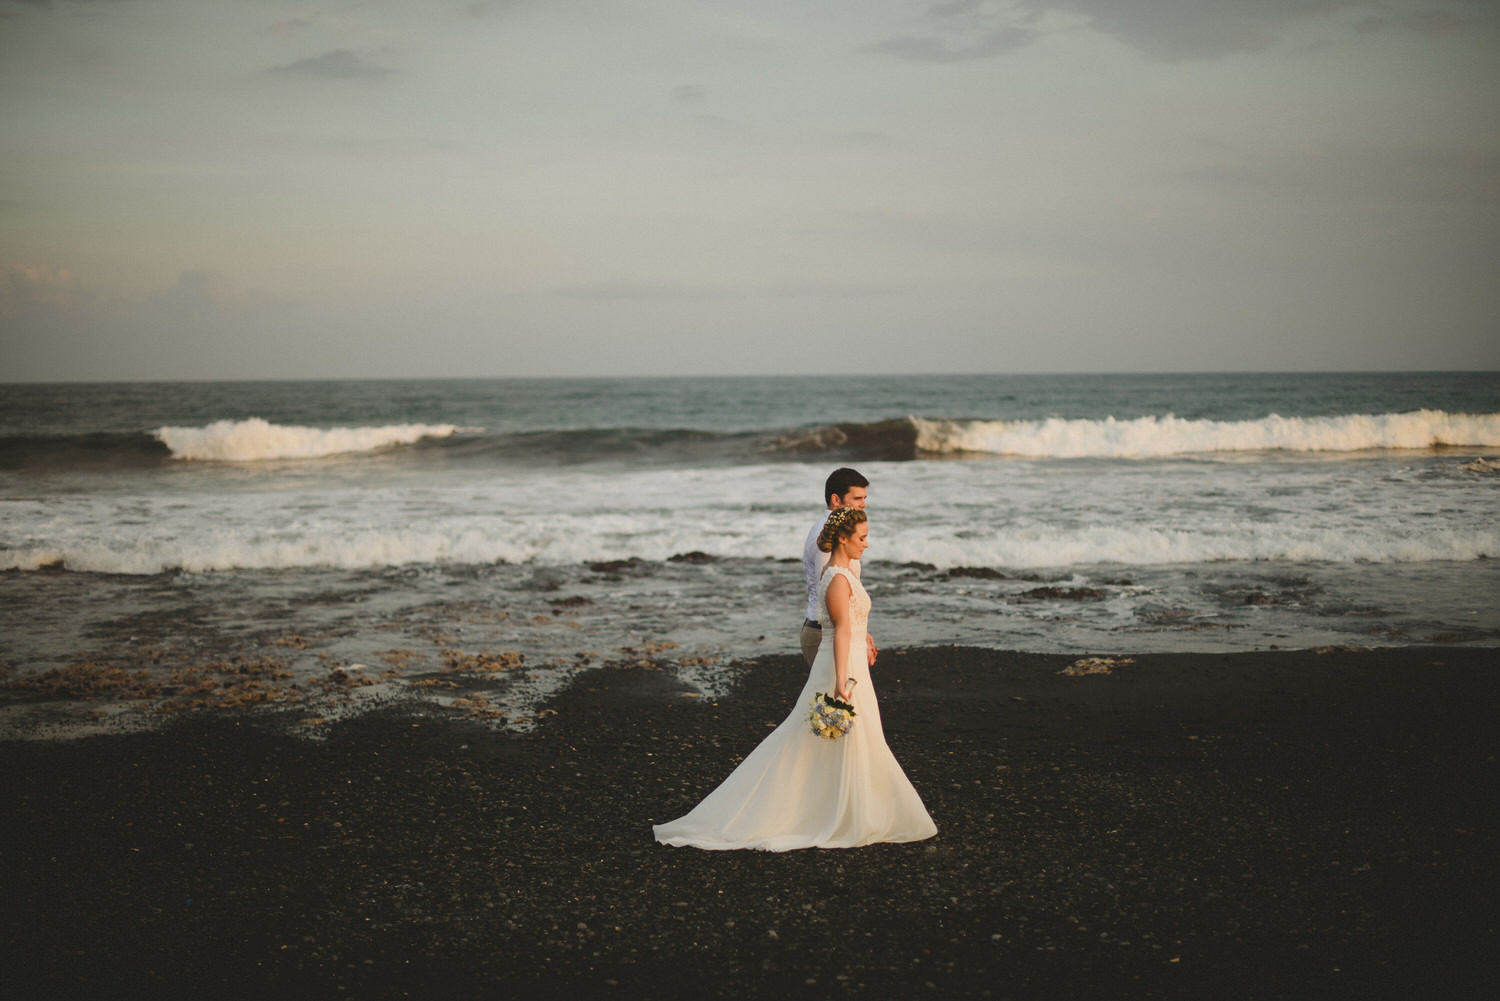 bali-wedding-destination-wedding-in-bali-bali-photographer-pantai-purnama-ubud-wedding-profesional-bali-wedding-photographer-diktatphotography-vania-pedro-111